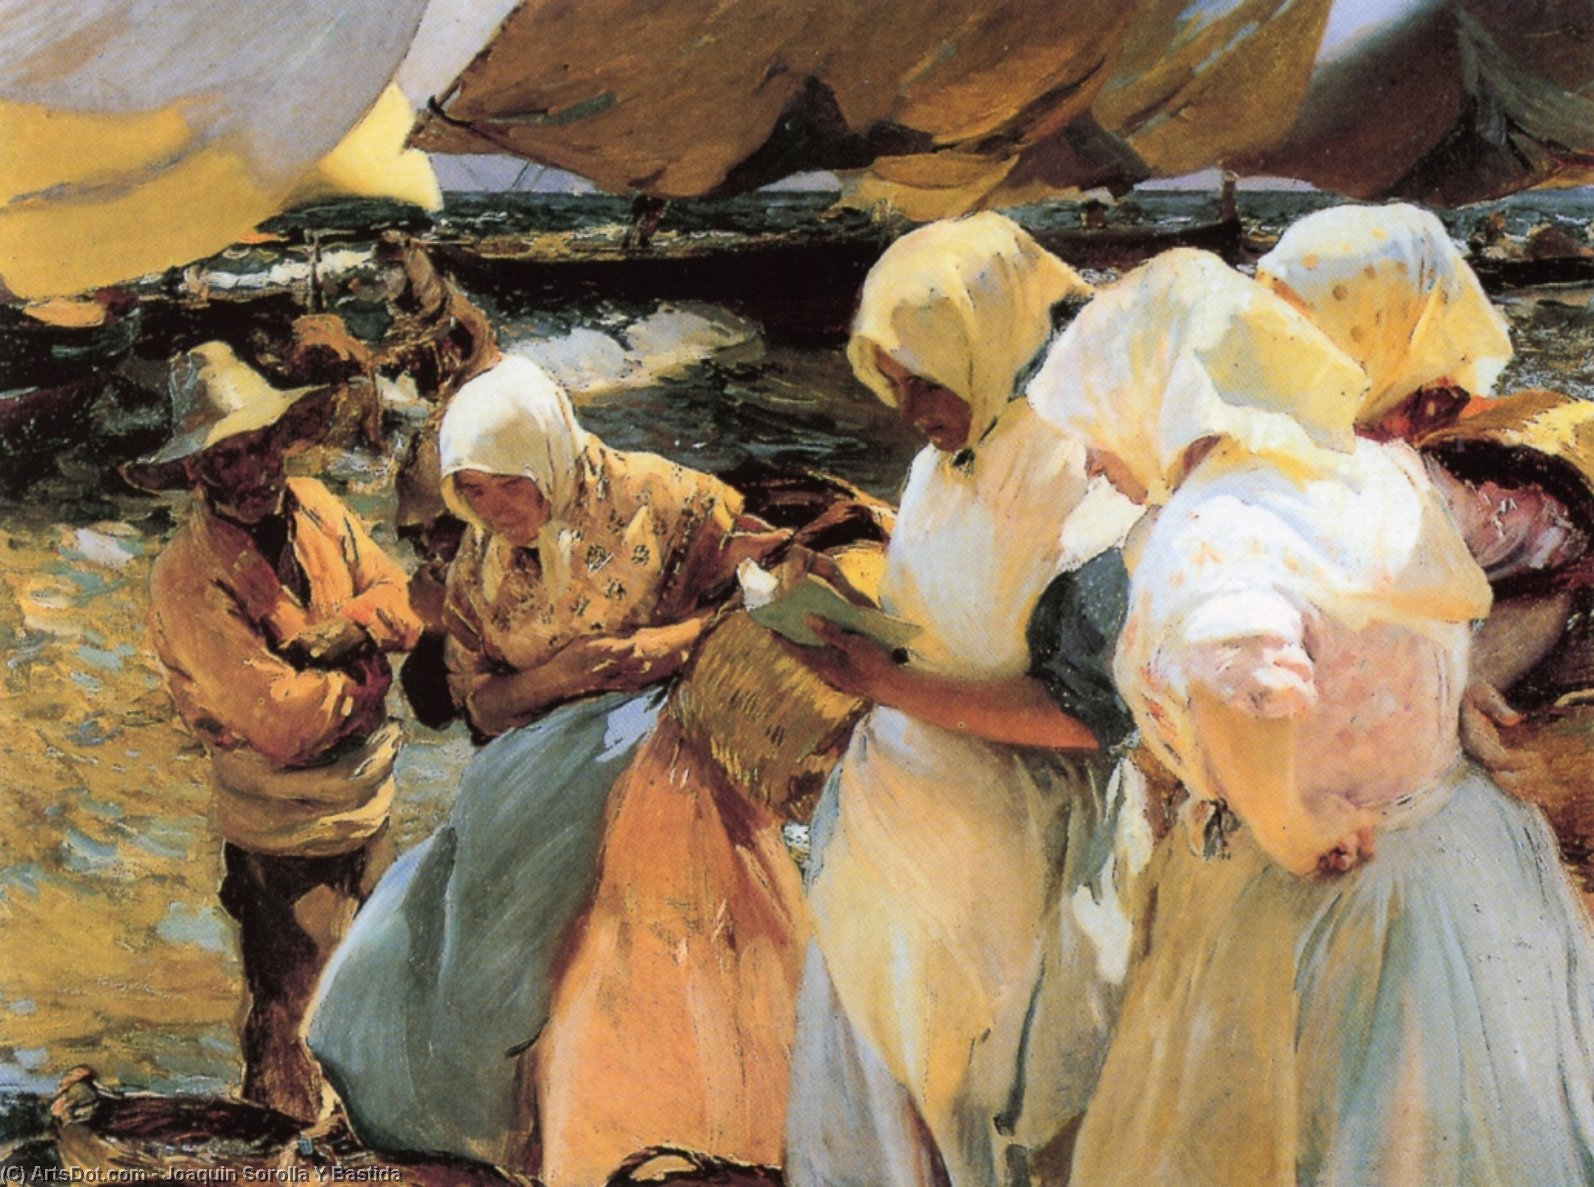 Valencian Fishwives, Oil On Canvas by Joaquin Sorolla Y Bastida (1863-1923, Spain)